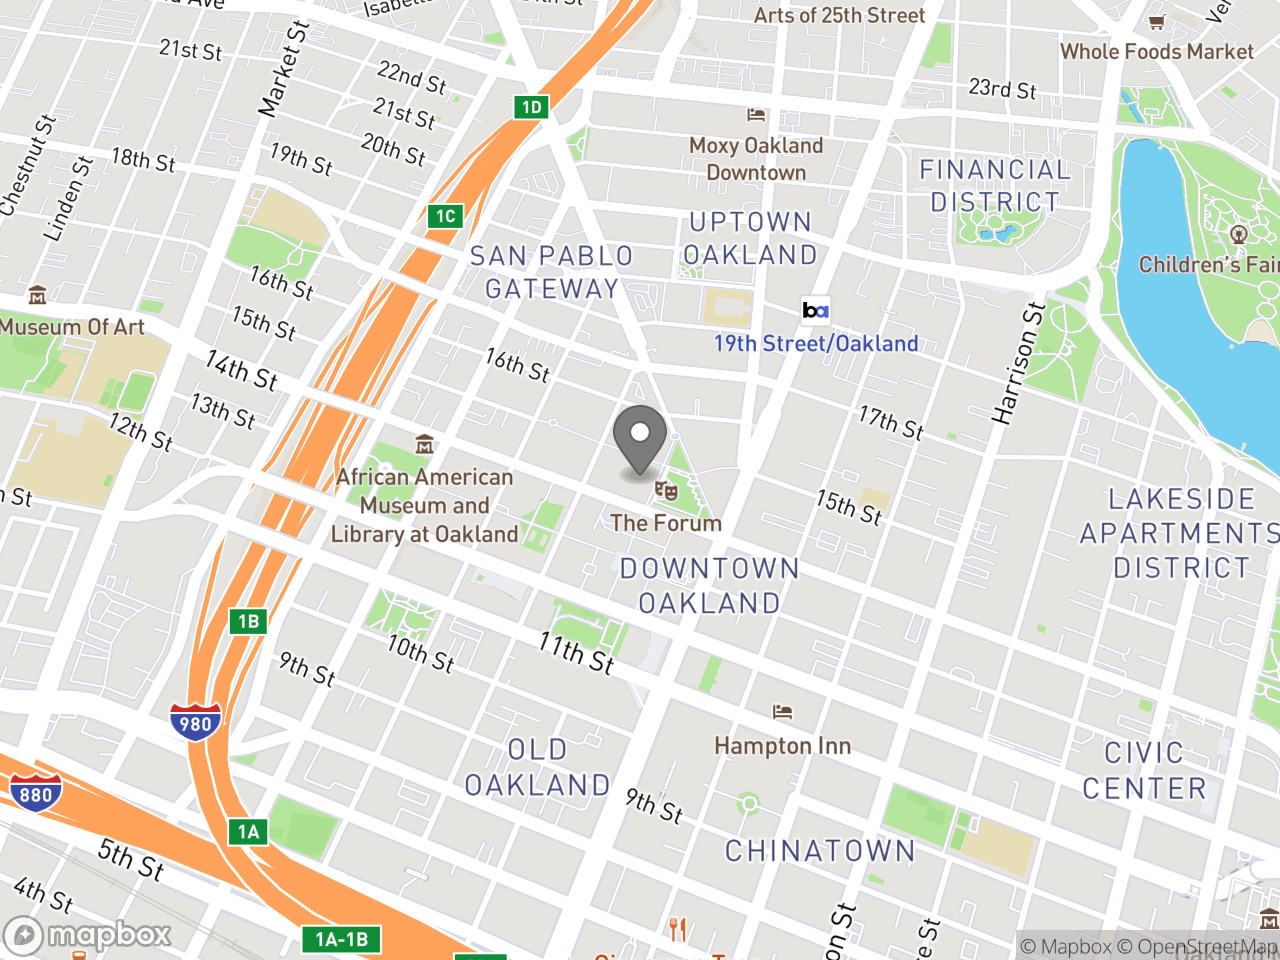 Map image for Mayor's Commission on Persons with Disabilities, located at 1 Frank H Ogawa Plaza in Downtown Oakland, CA 94612